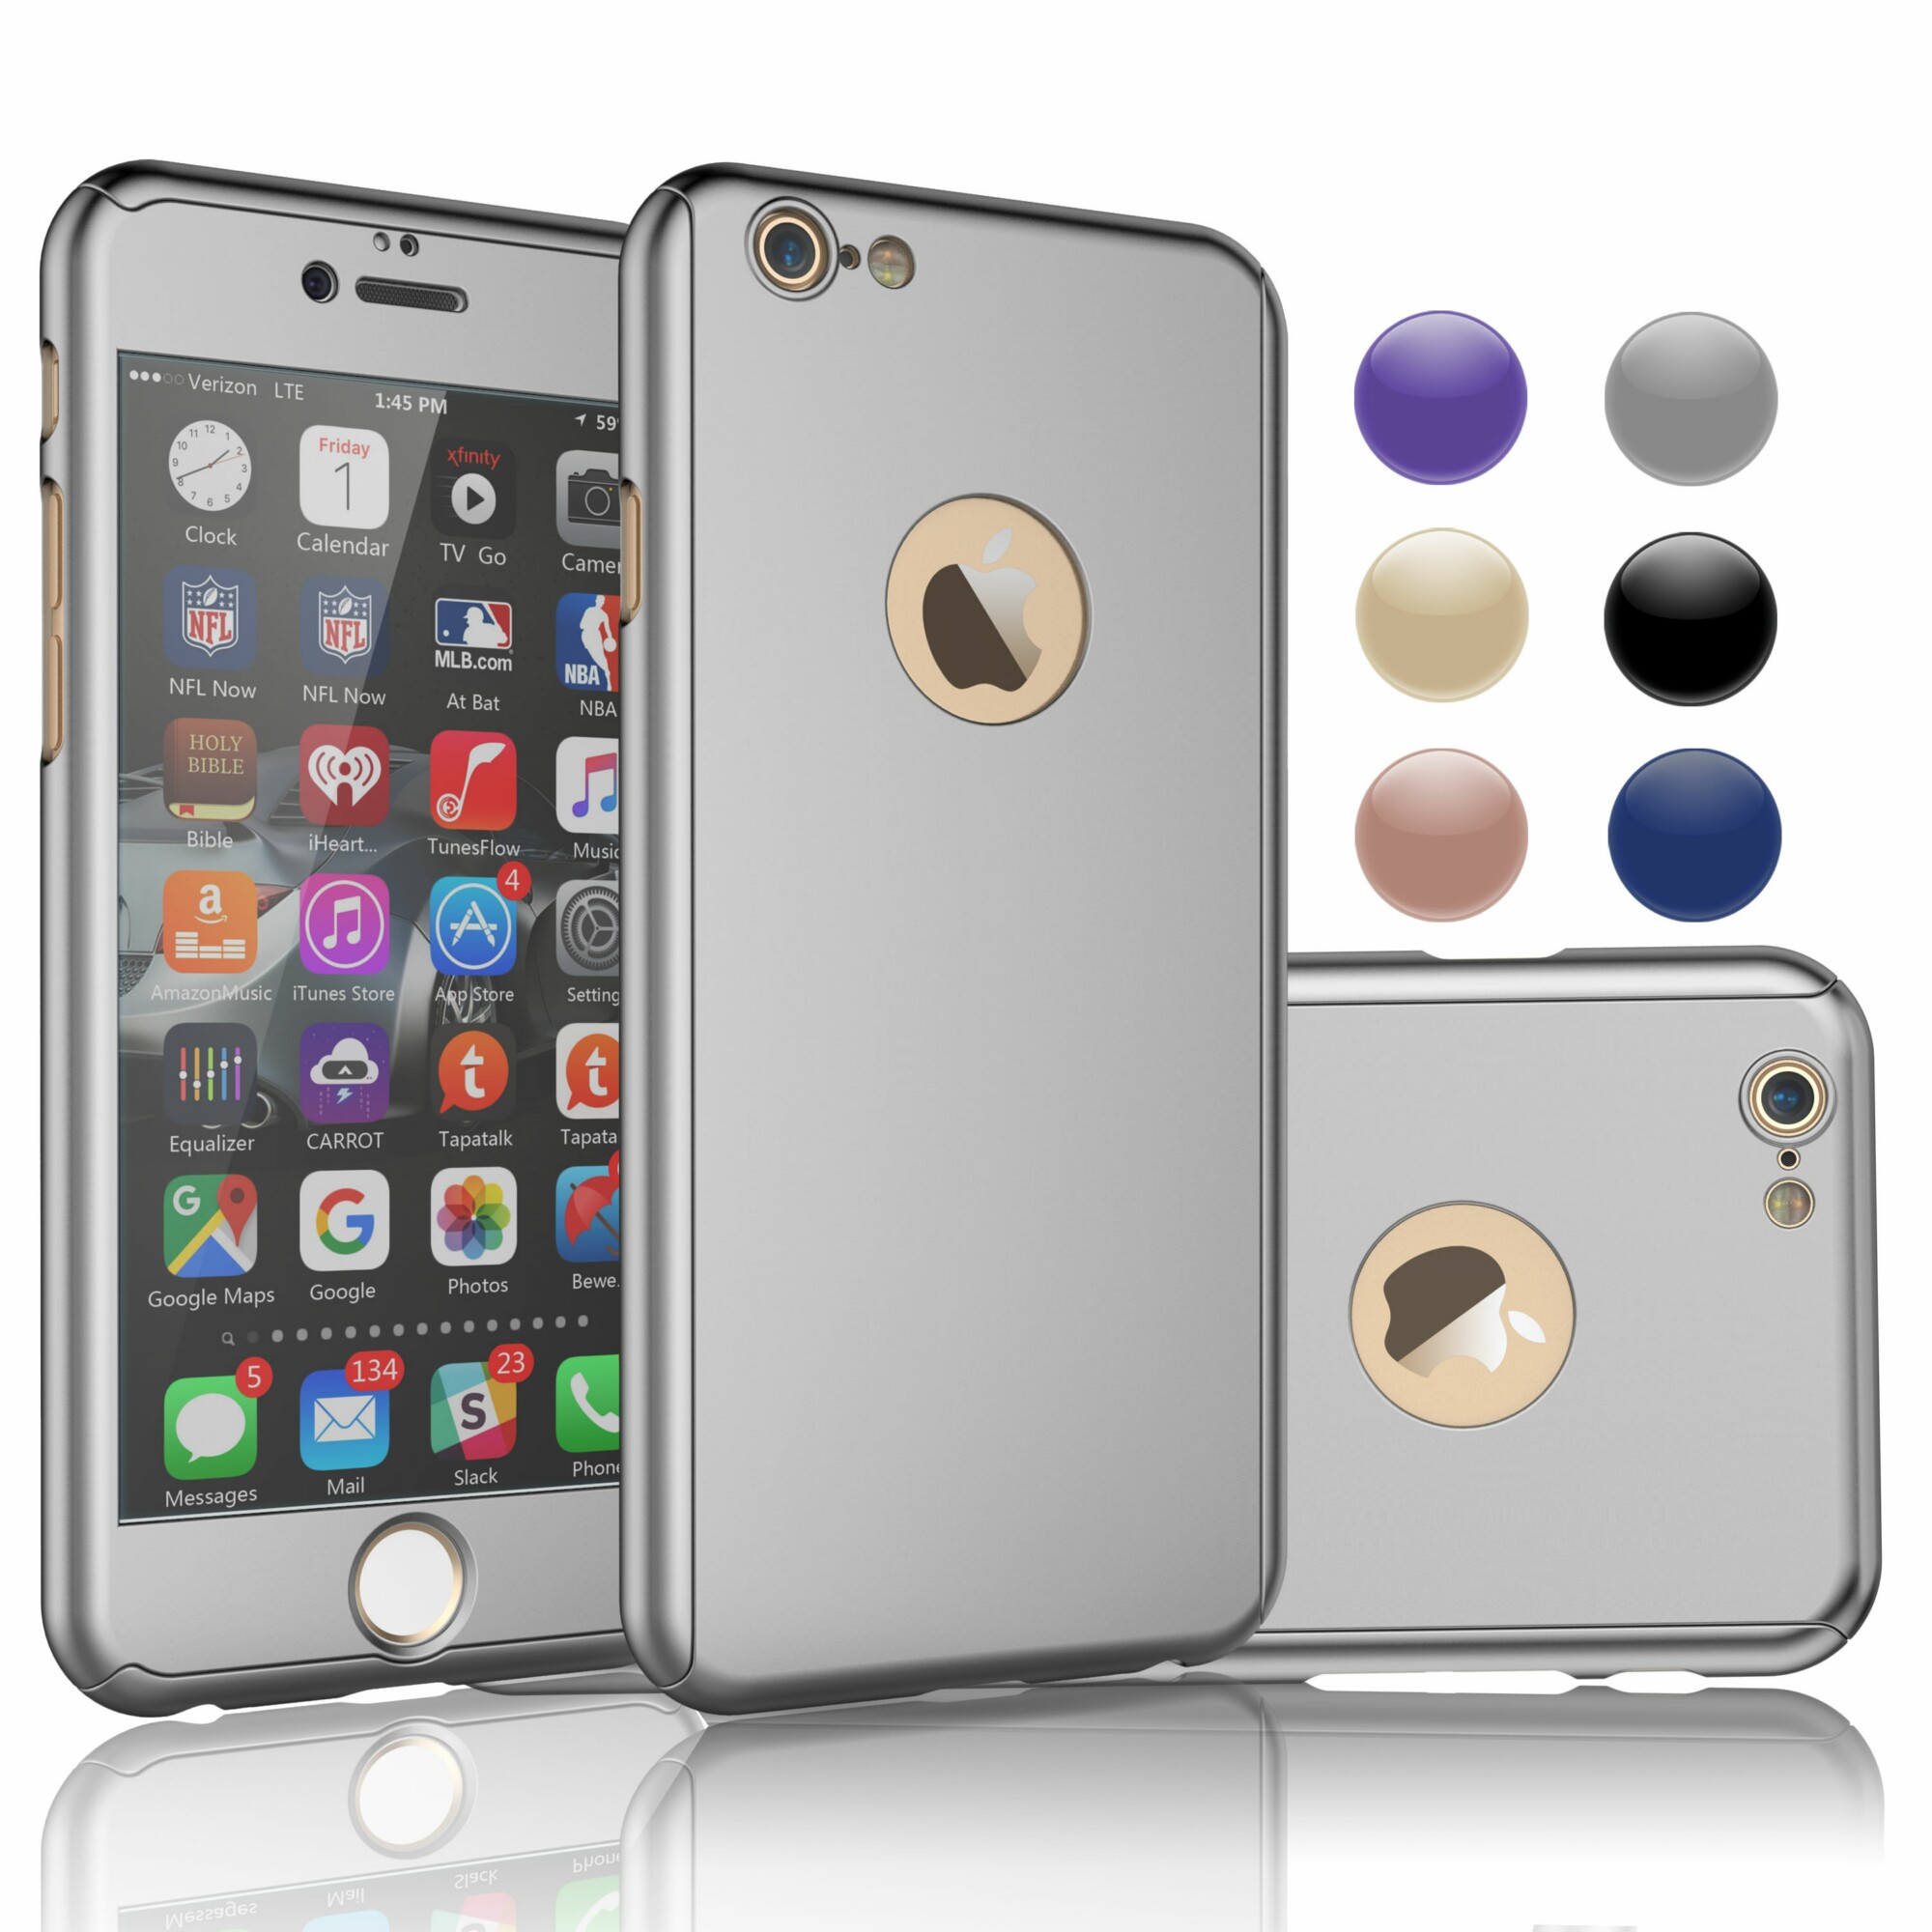 "Apple iPhone 6s Case, Case For iPhone 6s, iPhone 6s Screen Protector, Njjex Thin Premium Dual Layer Hard Case For iPhone 6S with Tempered Glass Screen Protector For iPhone 6s 4.7"" -Sliver"